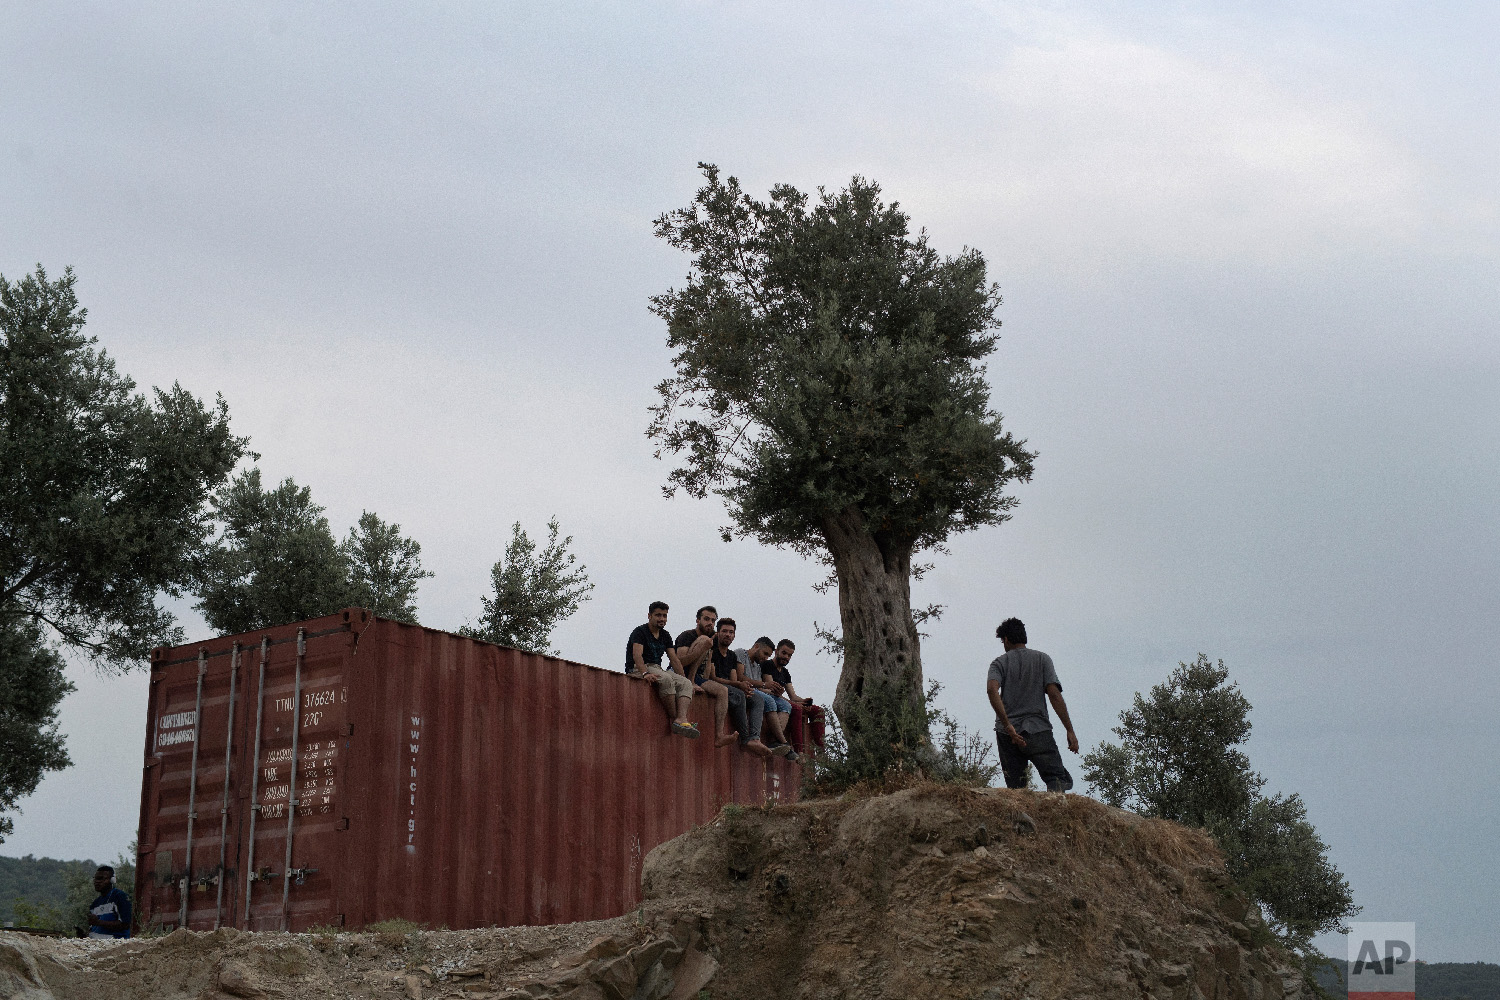 Refugees and migrants sit on the top of a container at a makeshift camp outside Moria on the northeastern Aegean island of Lesbos, Greece on Saturday May 5, 2018. (AP Photo/Petros Giannakouris)